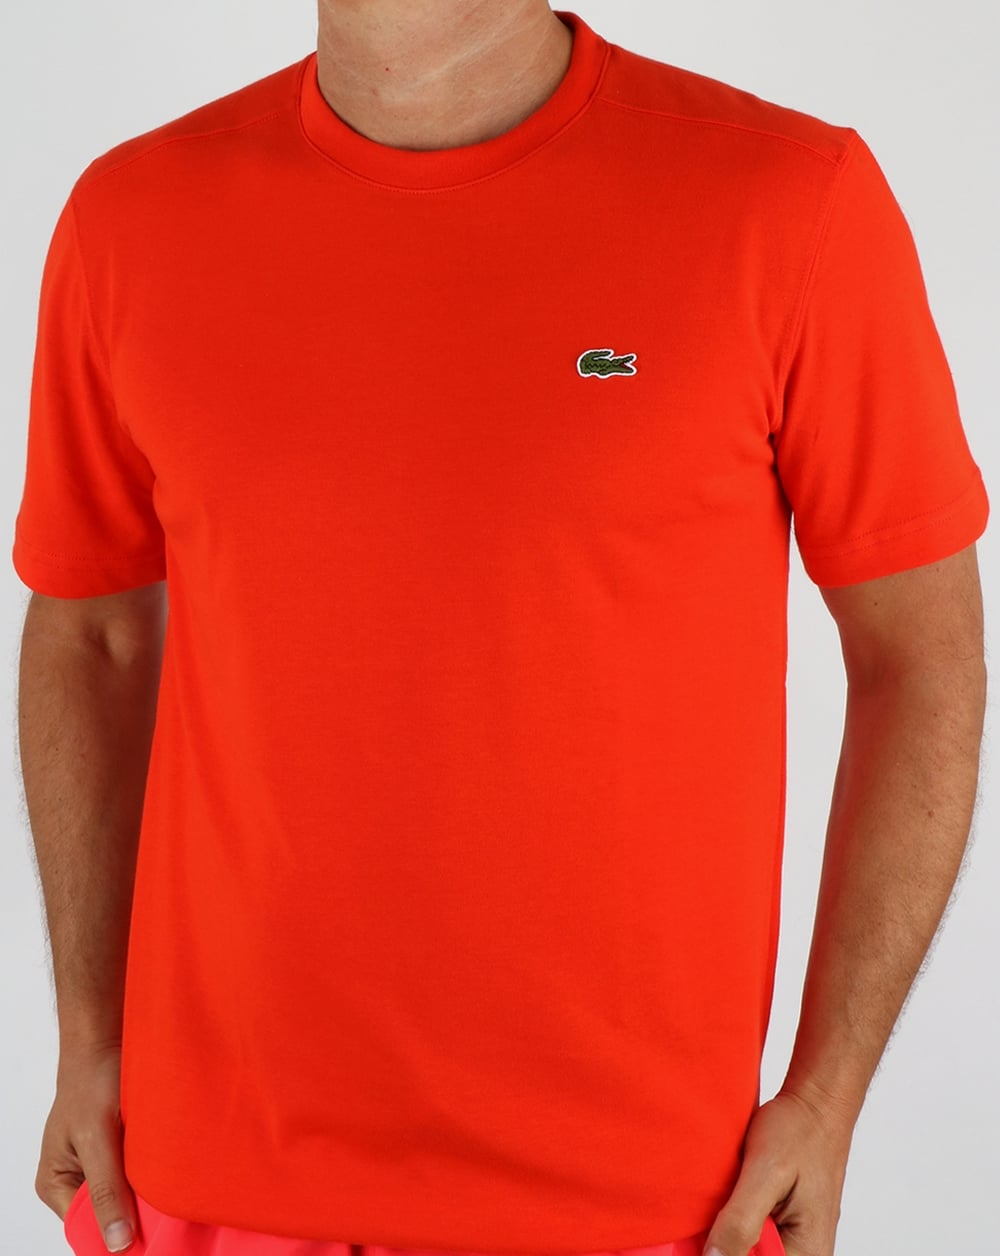 f357136fd7e3 Lacoste T-shirt Etna Red,crew neck, Men's, Cotton, Tee